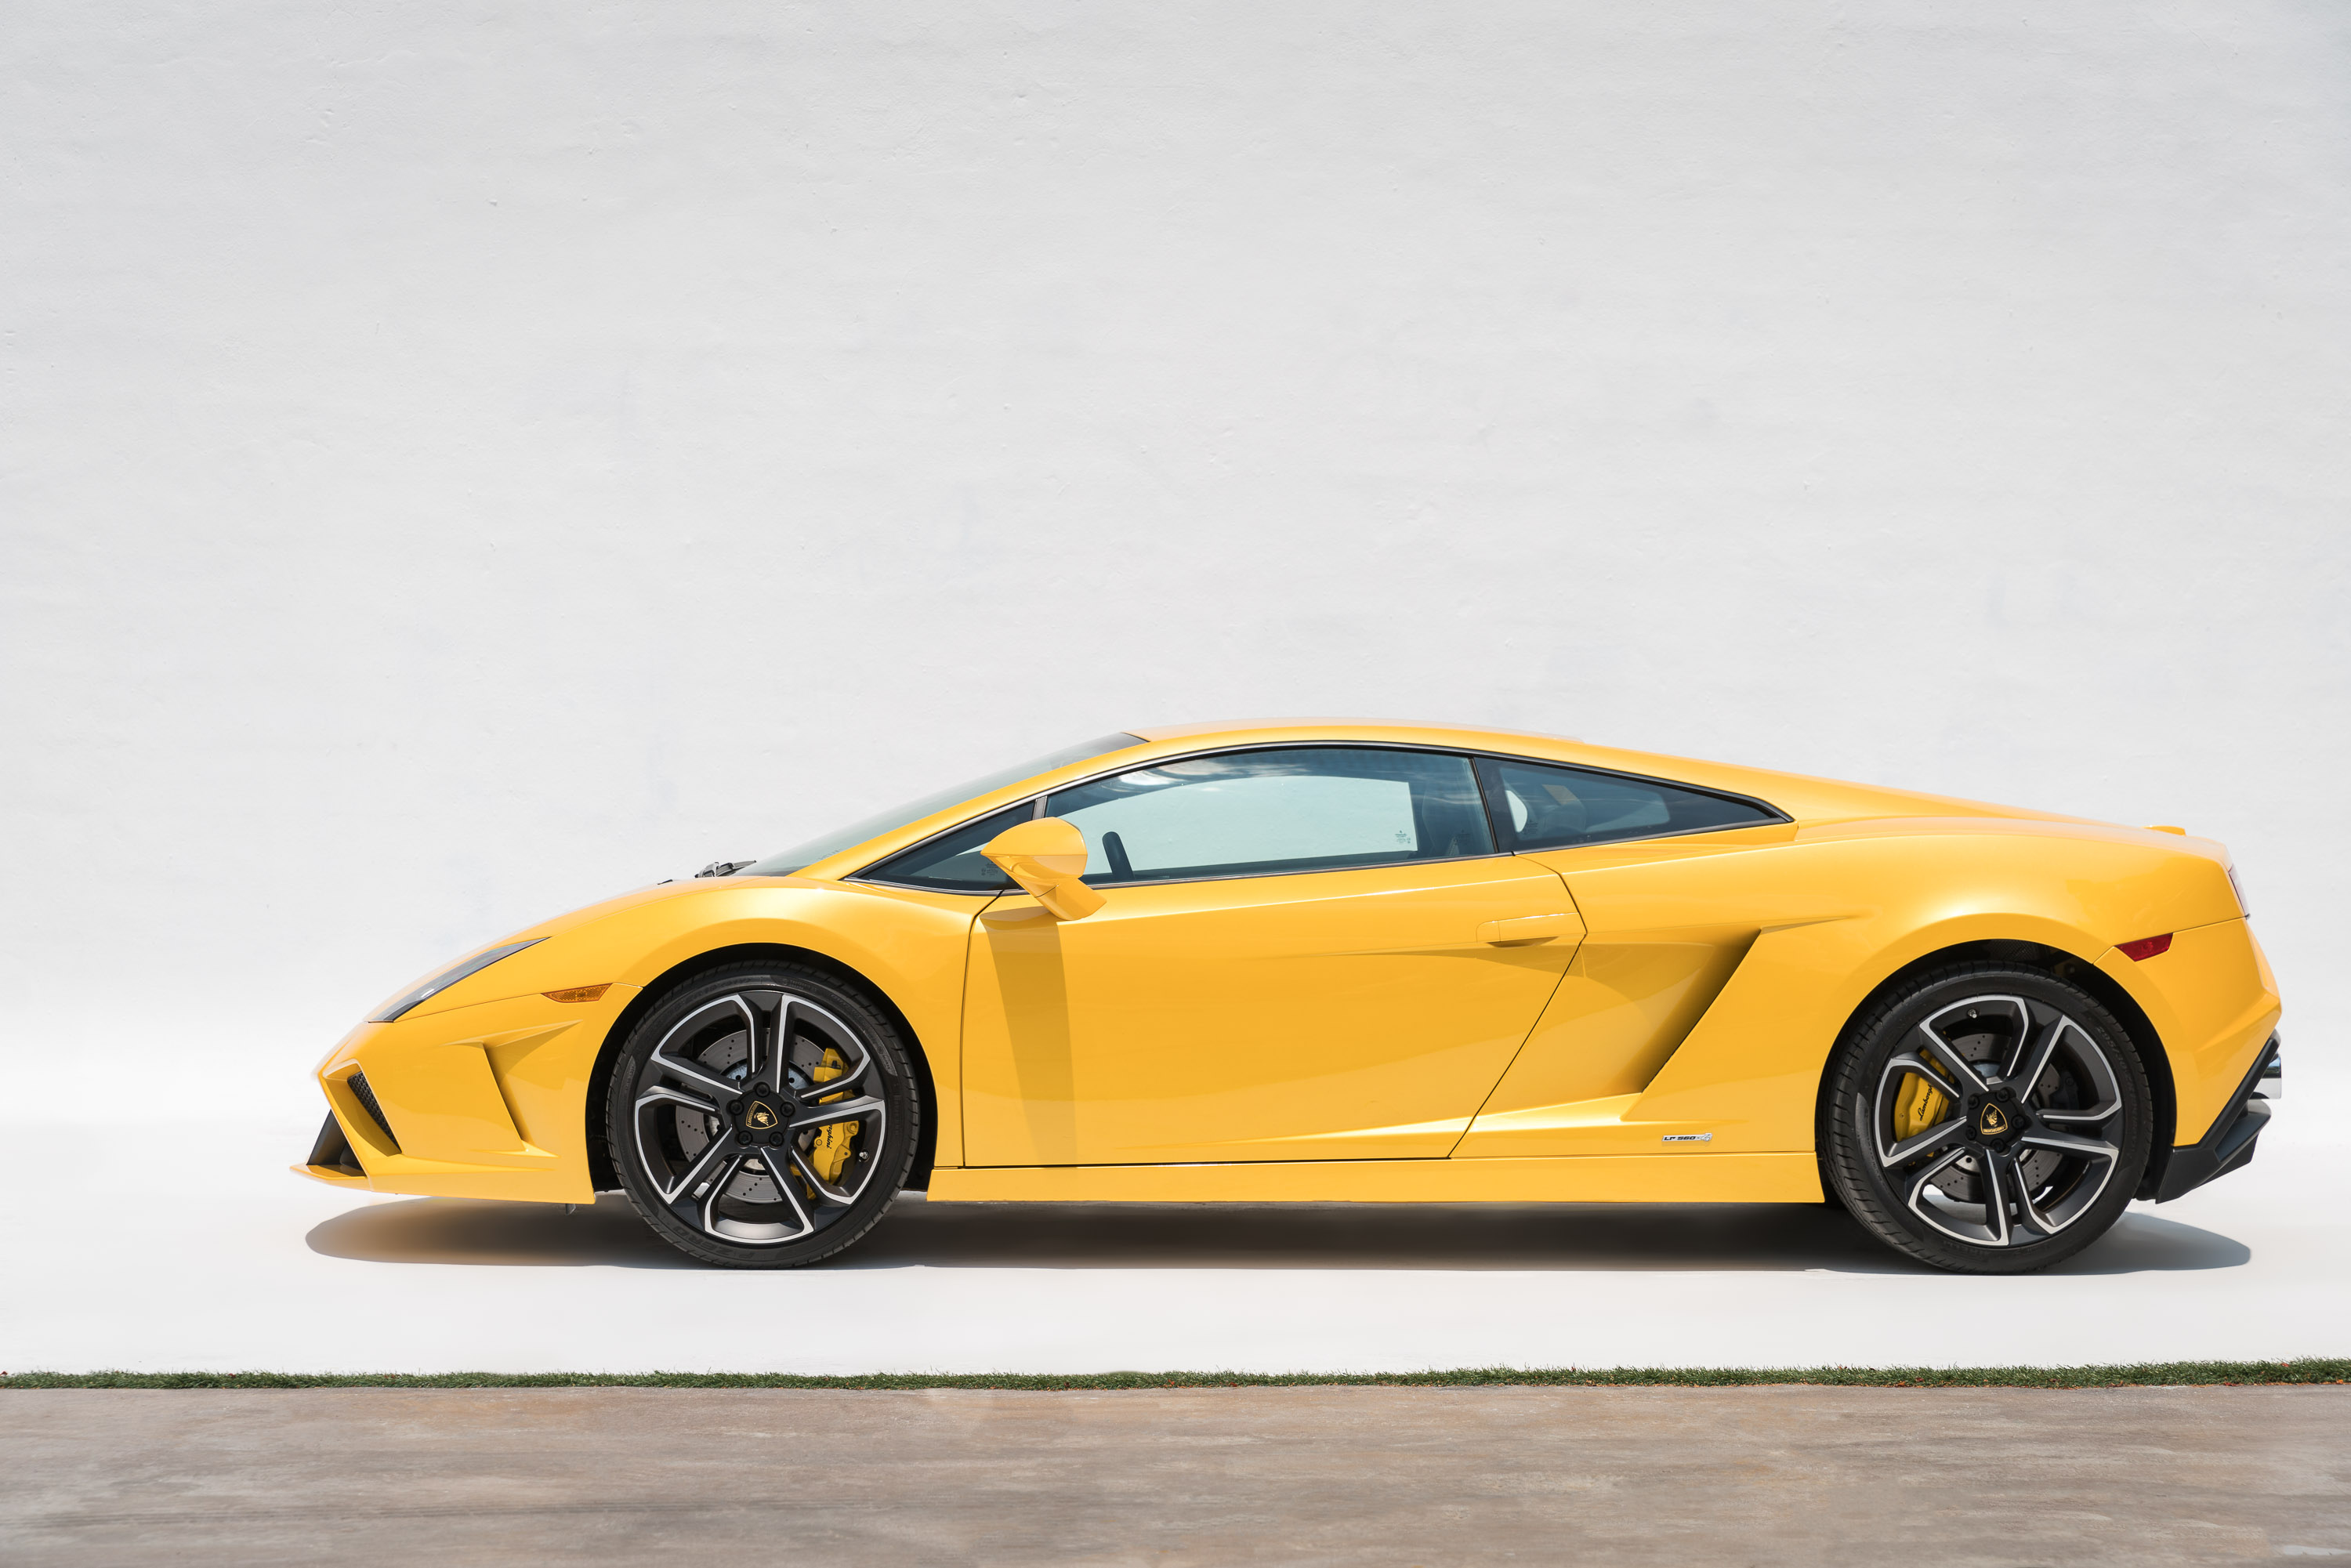 2013 Lamborghini Lp560 4 Final Edition For Sale Curated Vintage Classic Supercars